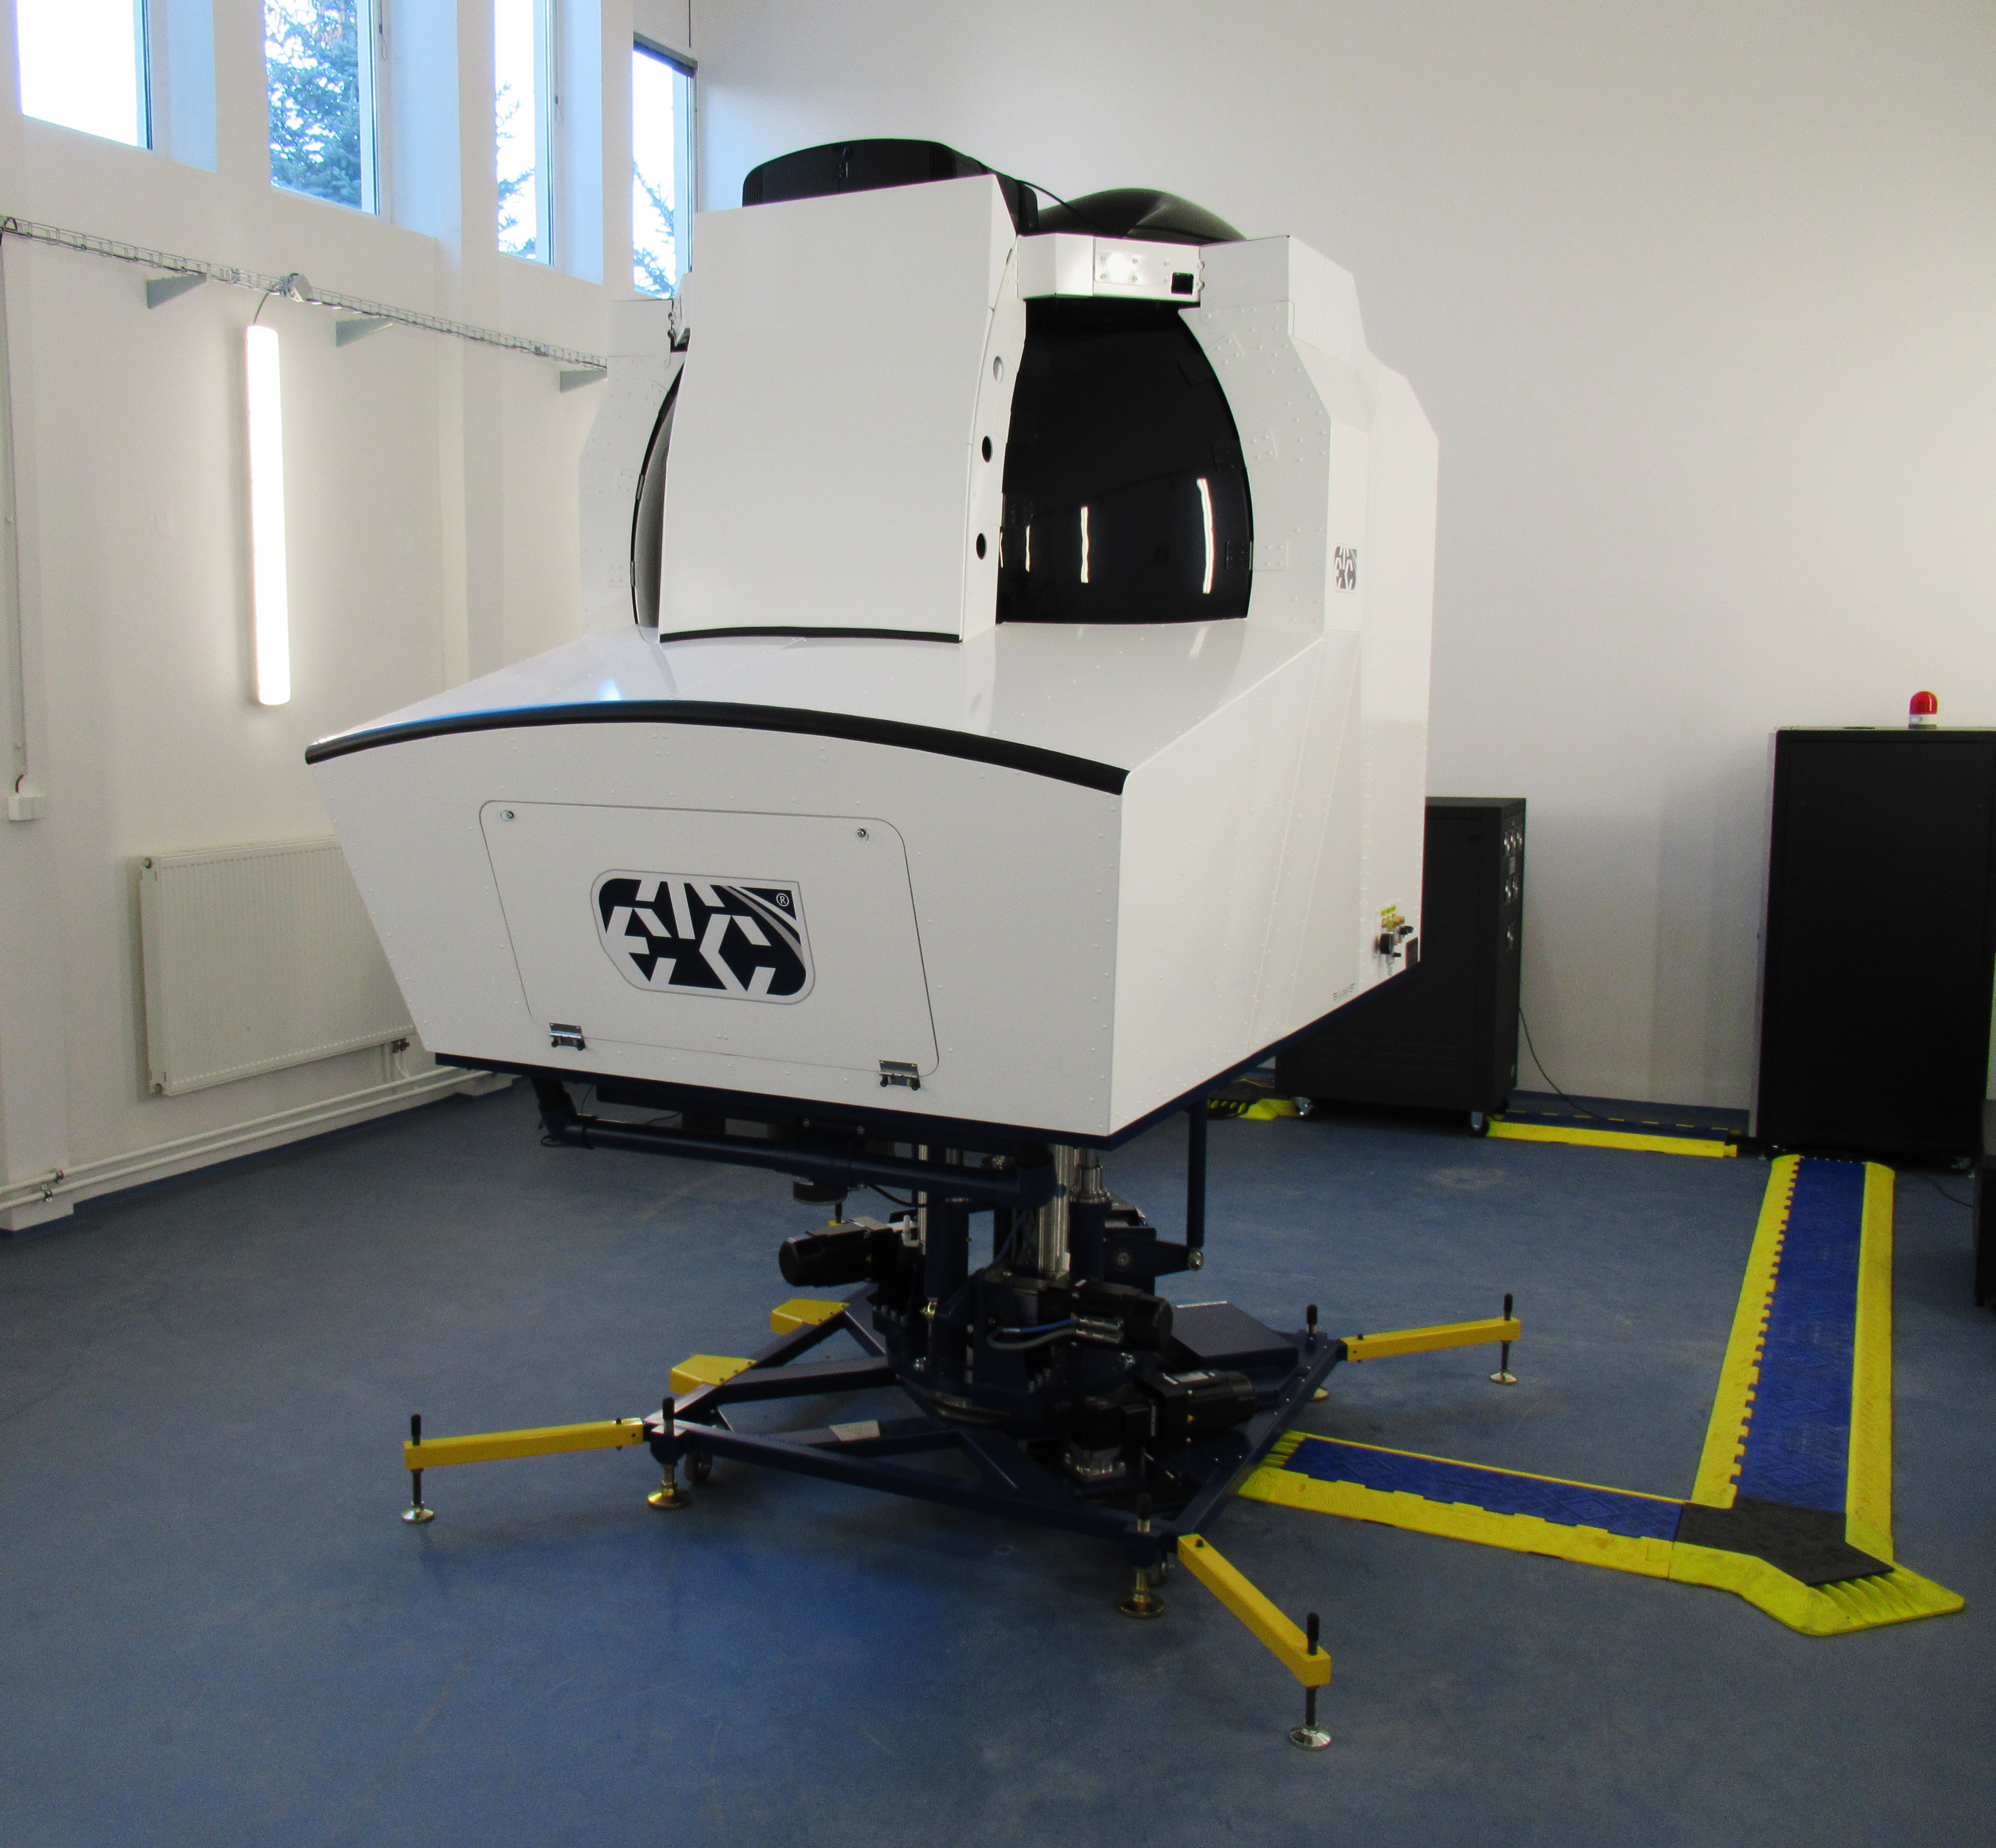 GH-200 Helicopter Spatial Disorientation Trainer